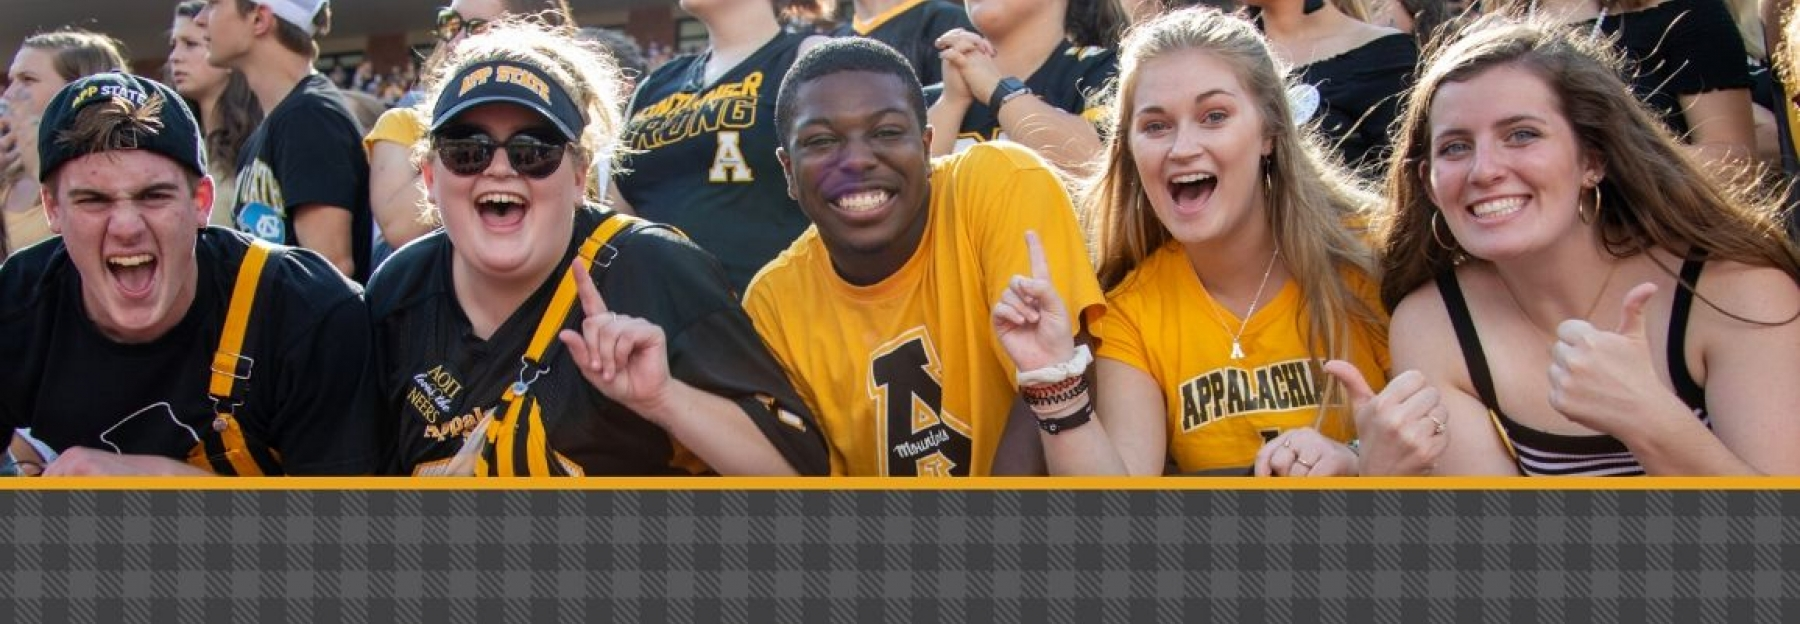 Appalachian Students at Kid Brewer Stadium cheering on App State Football